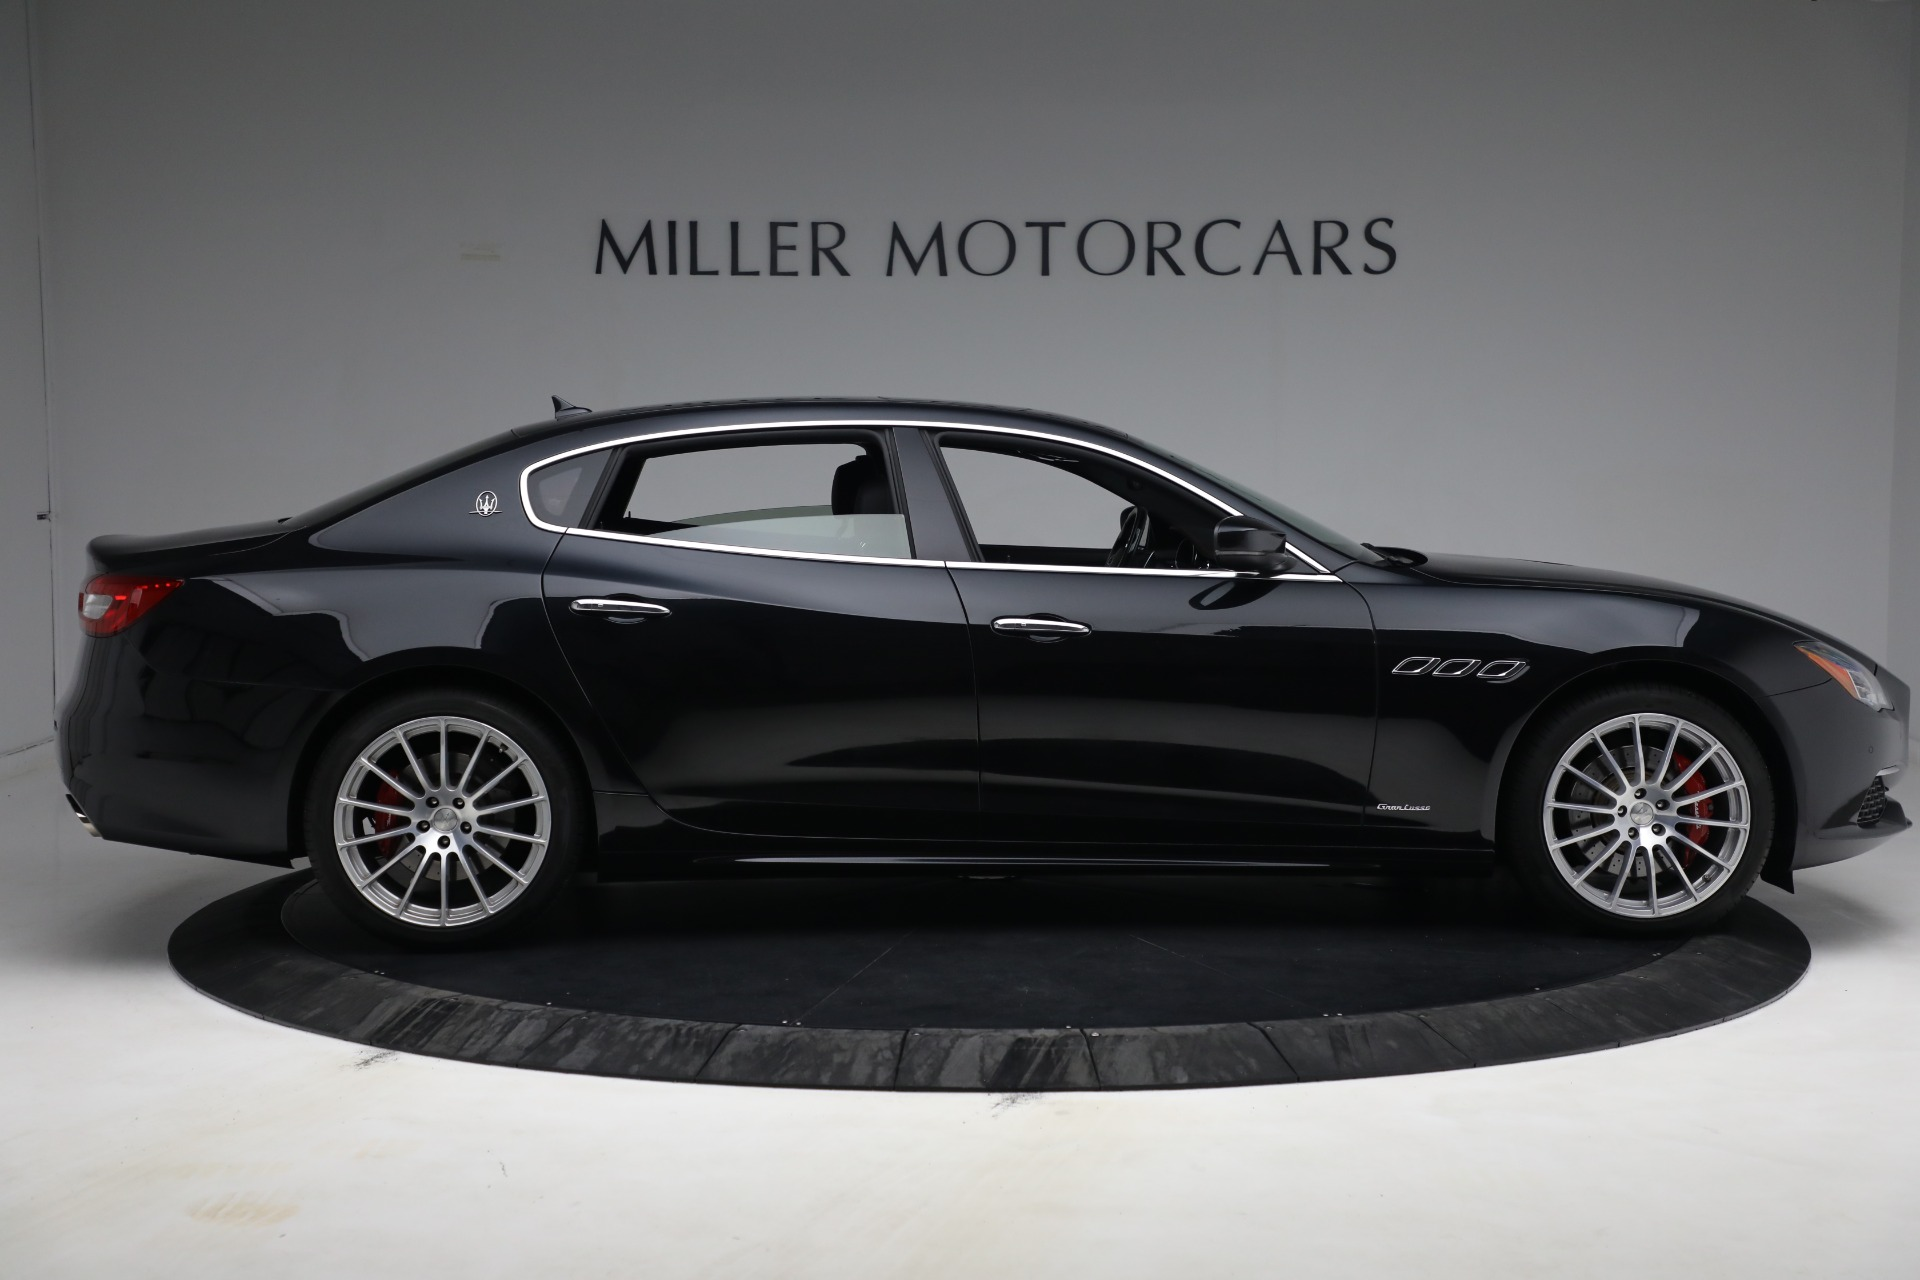 New 2019 Maserati Quattroporte S Q4 GranLusso For Sale In Greenwich, CT 2619_p9